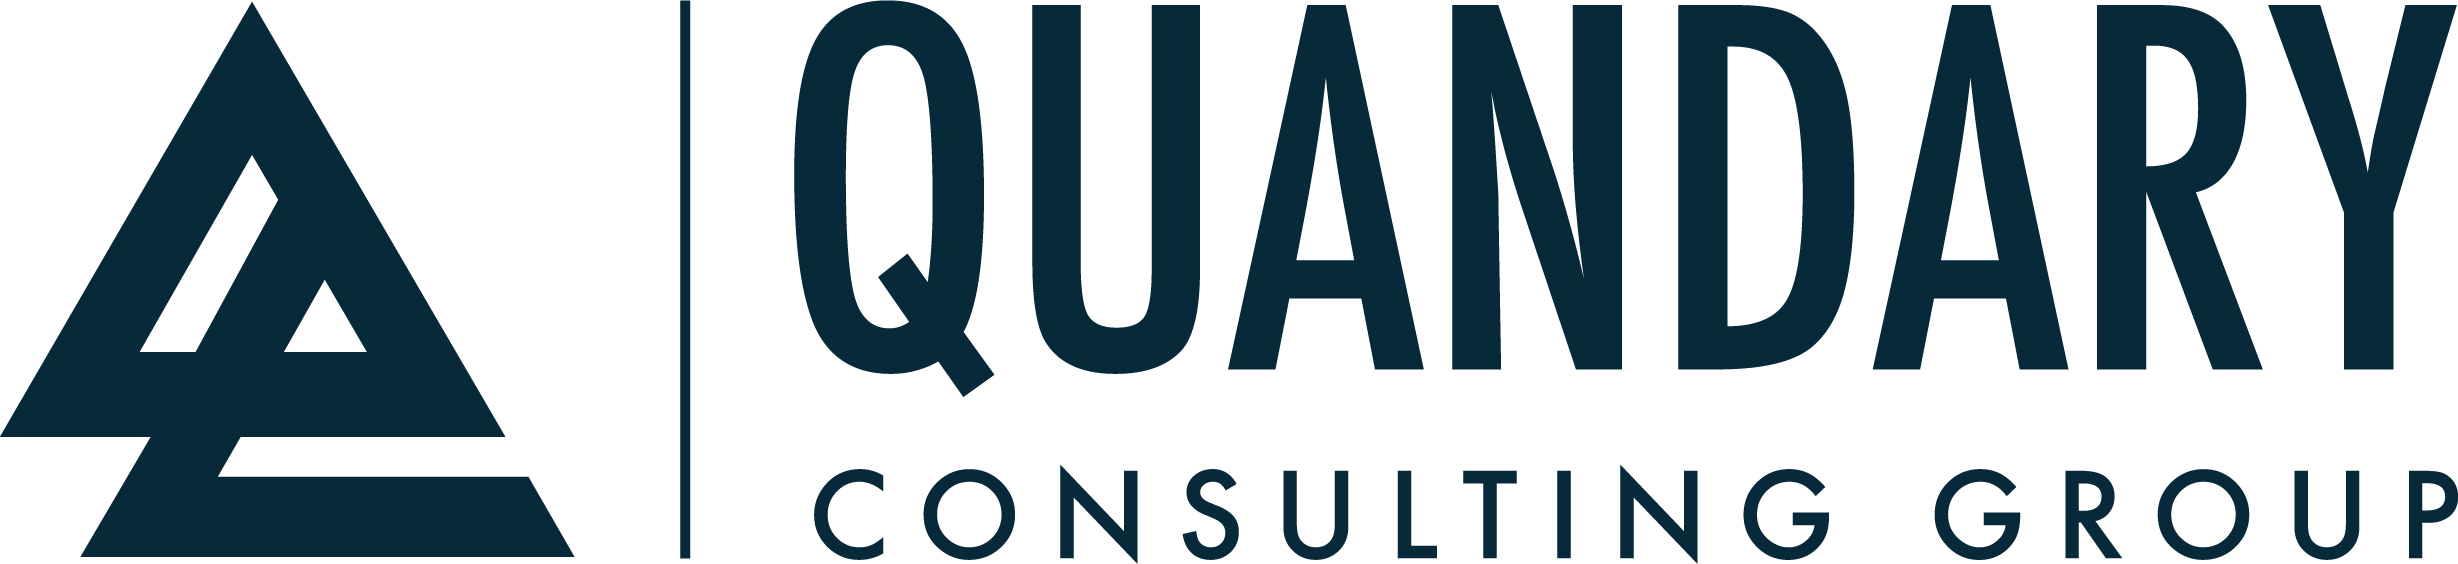 Quandary Consulting Group Help Center home page